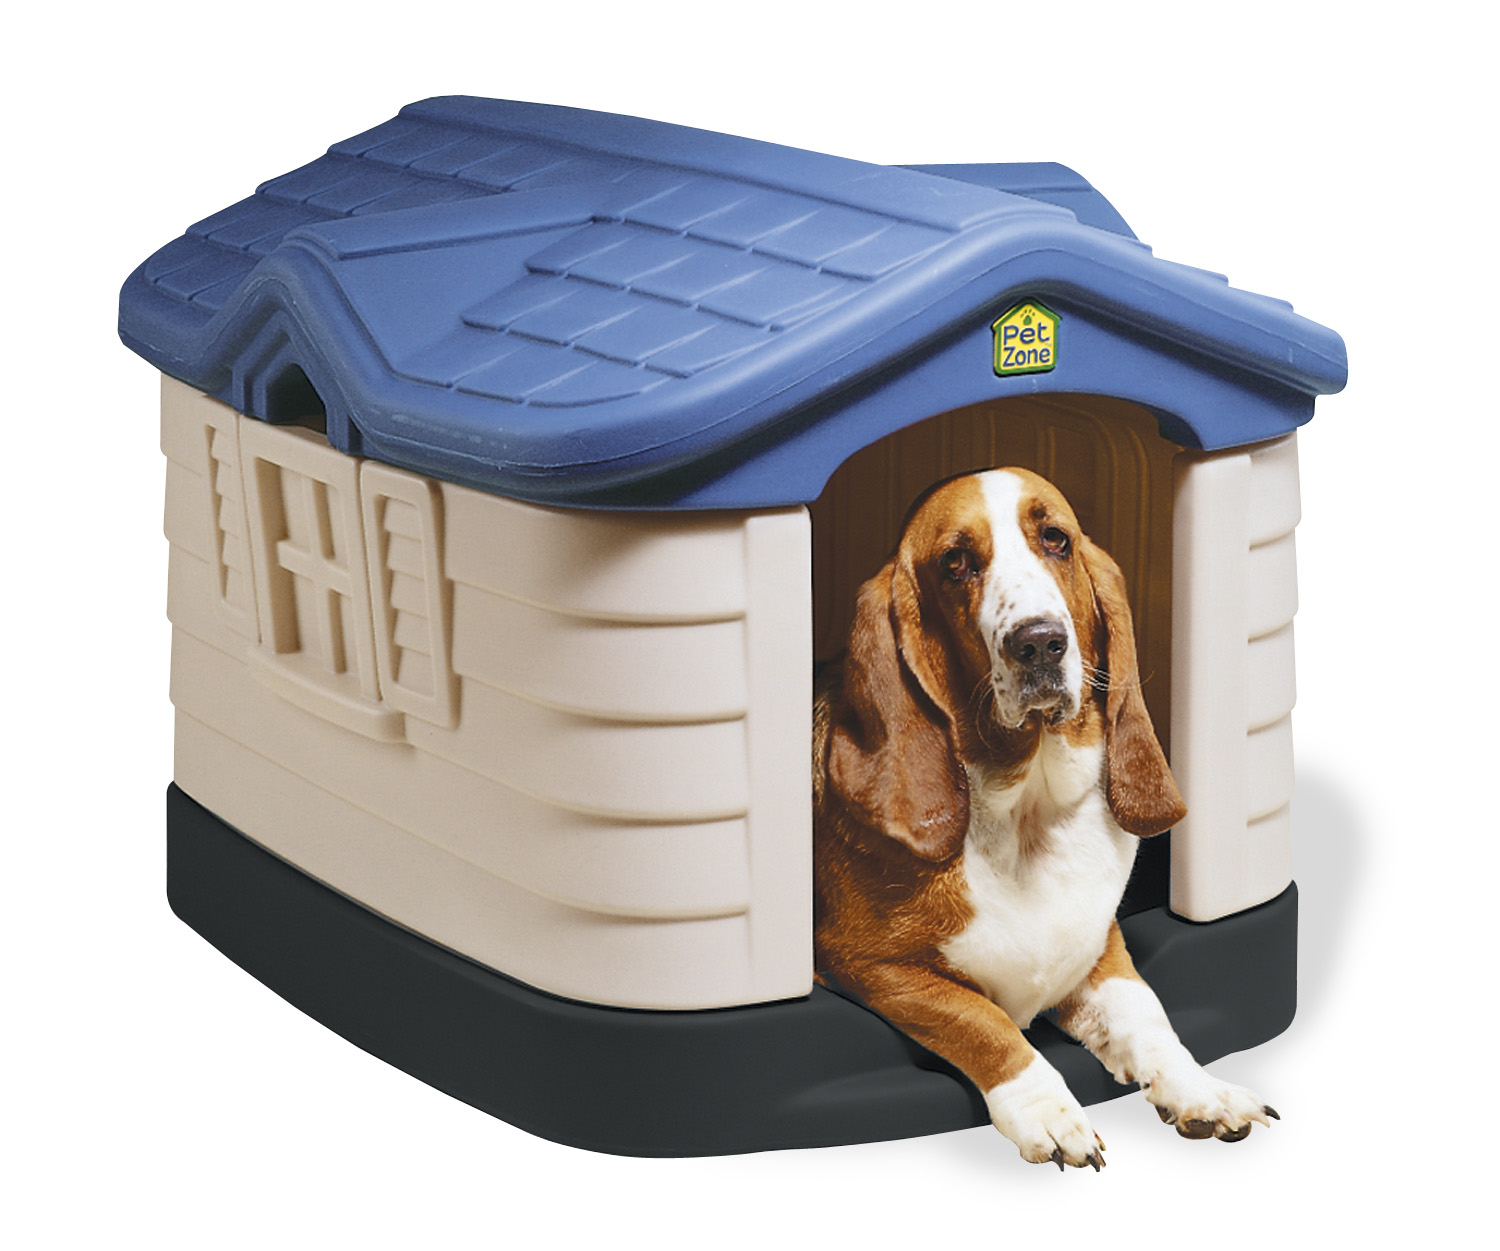 Large Insulated-Heated-Air-Conditioned Dog Houses -FREE SHIP